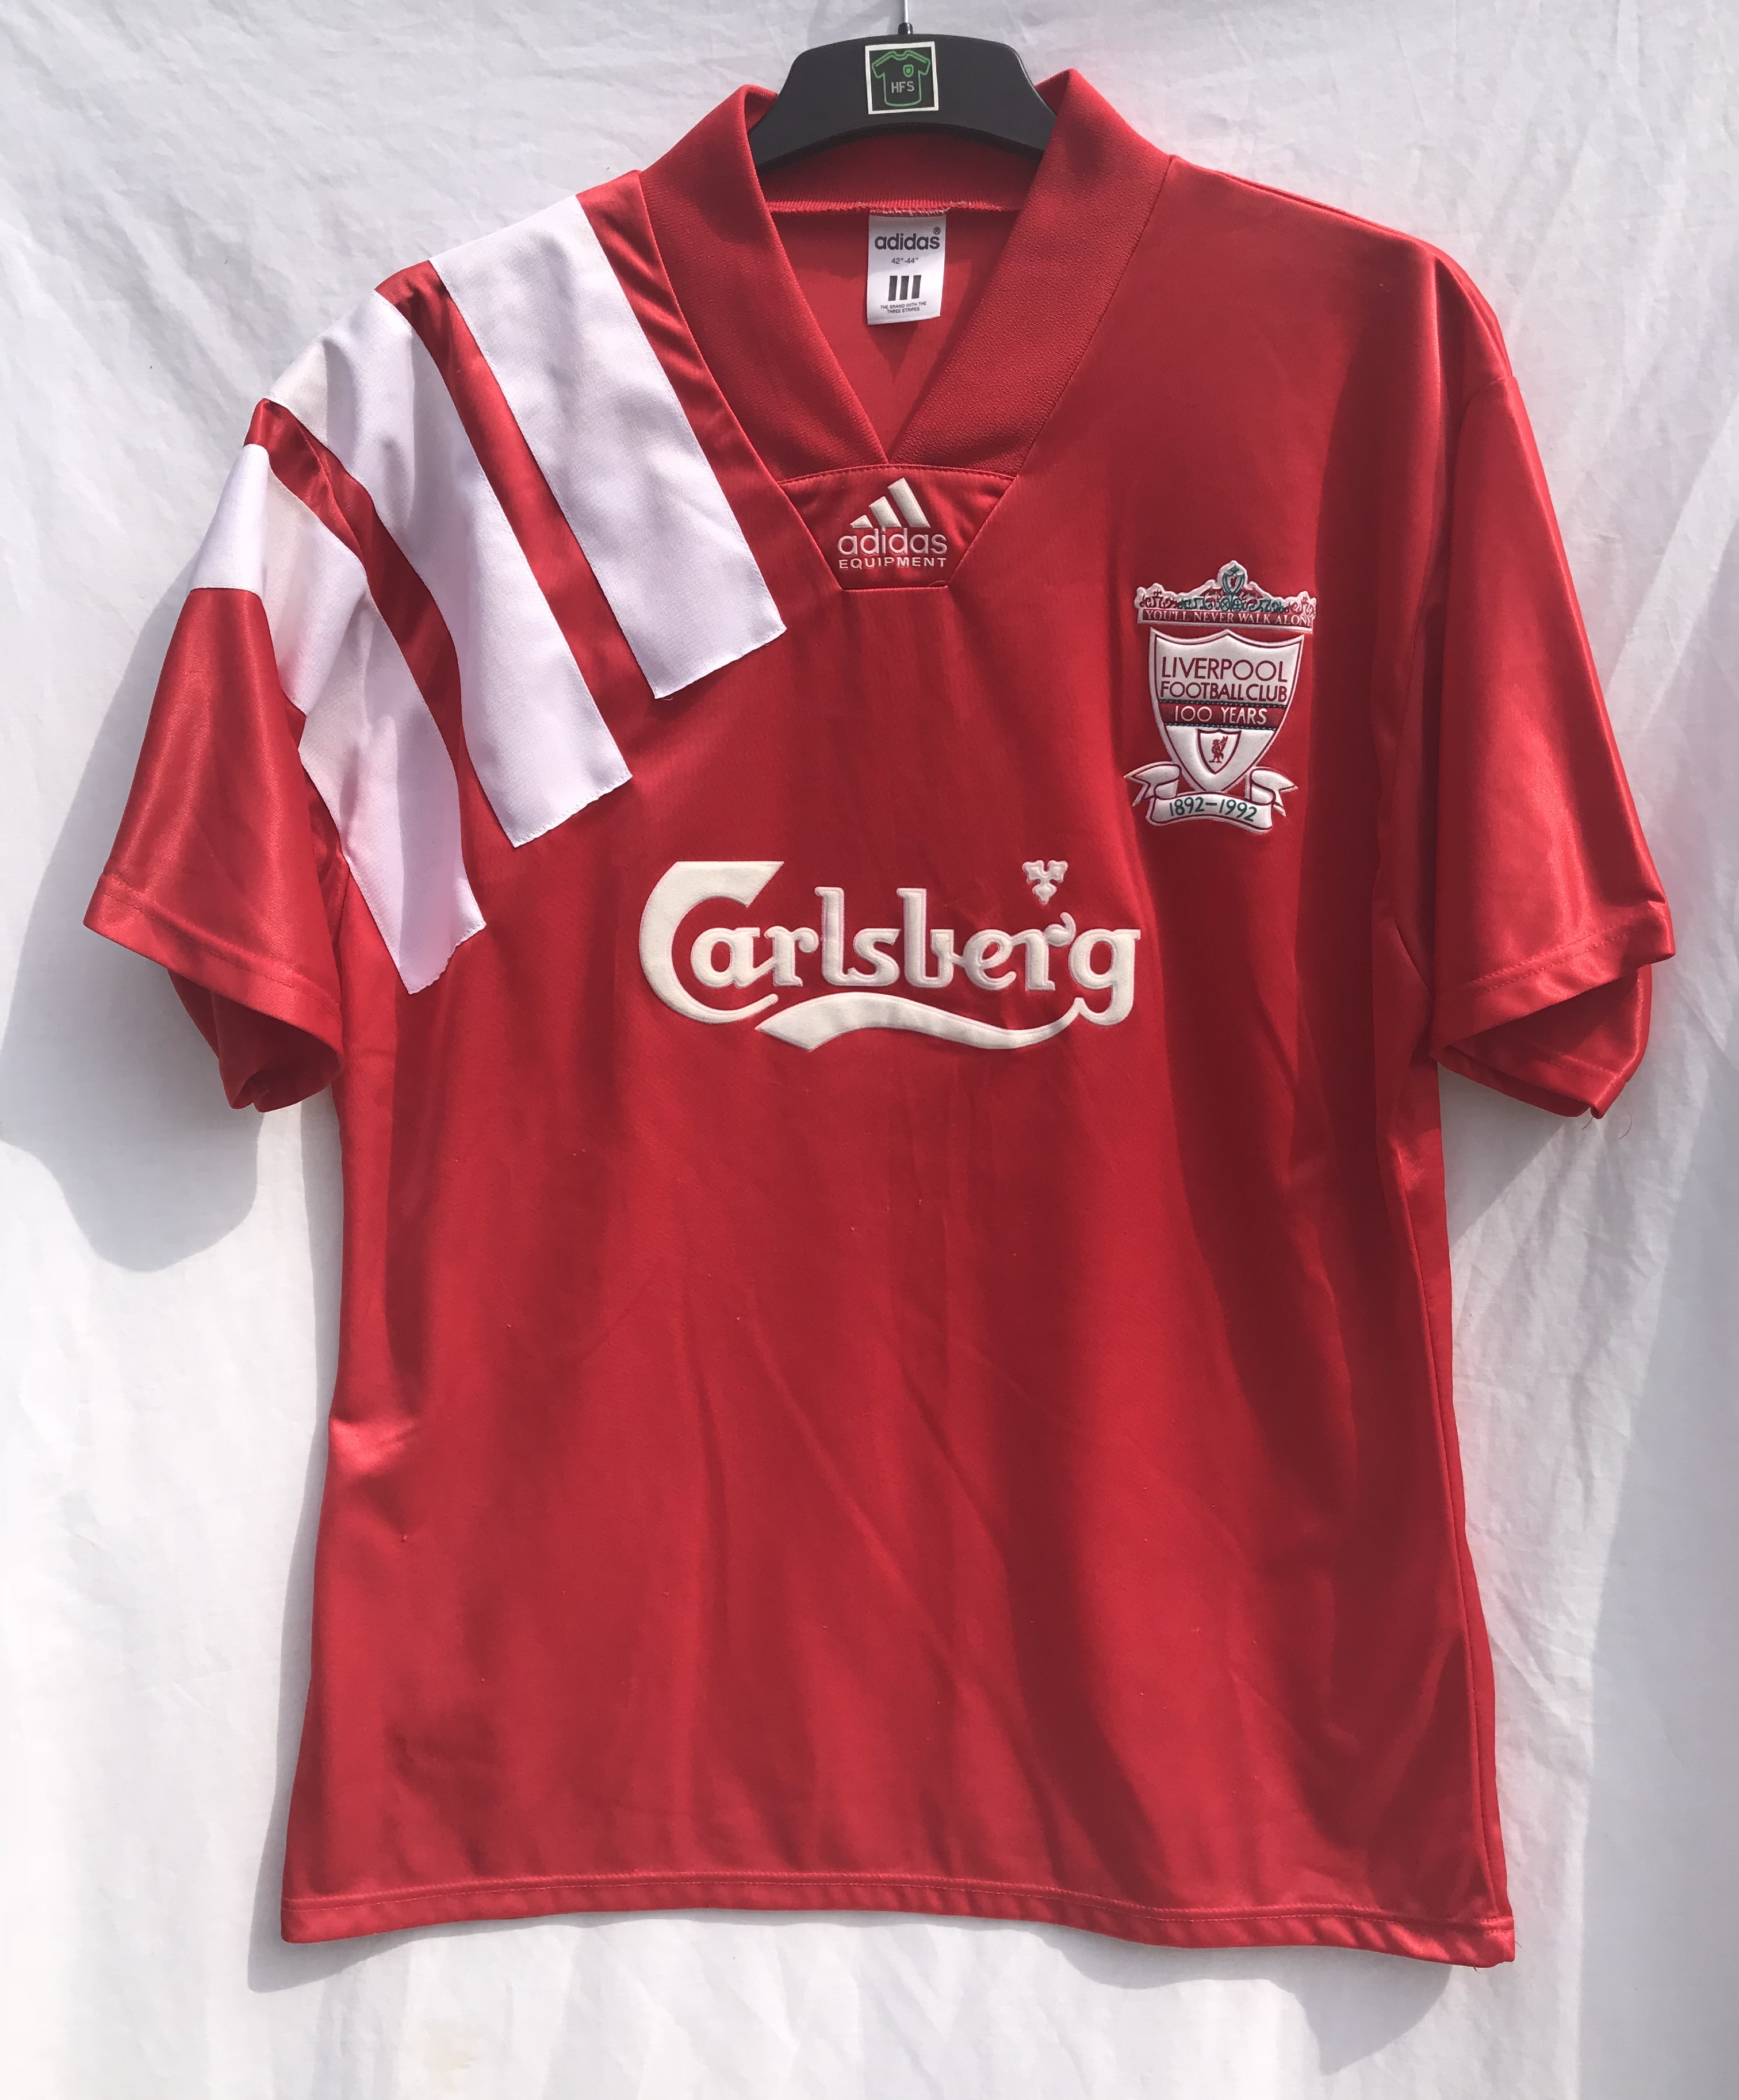 watch 16f88 3a47d Liverpool Centenary Football Shirt 1992/93 Adults Large Adidas